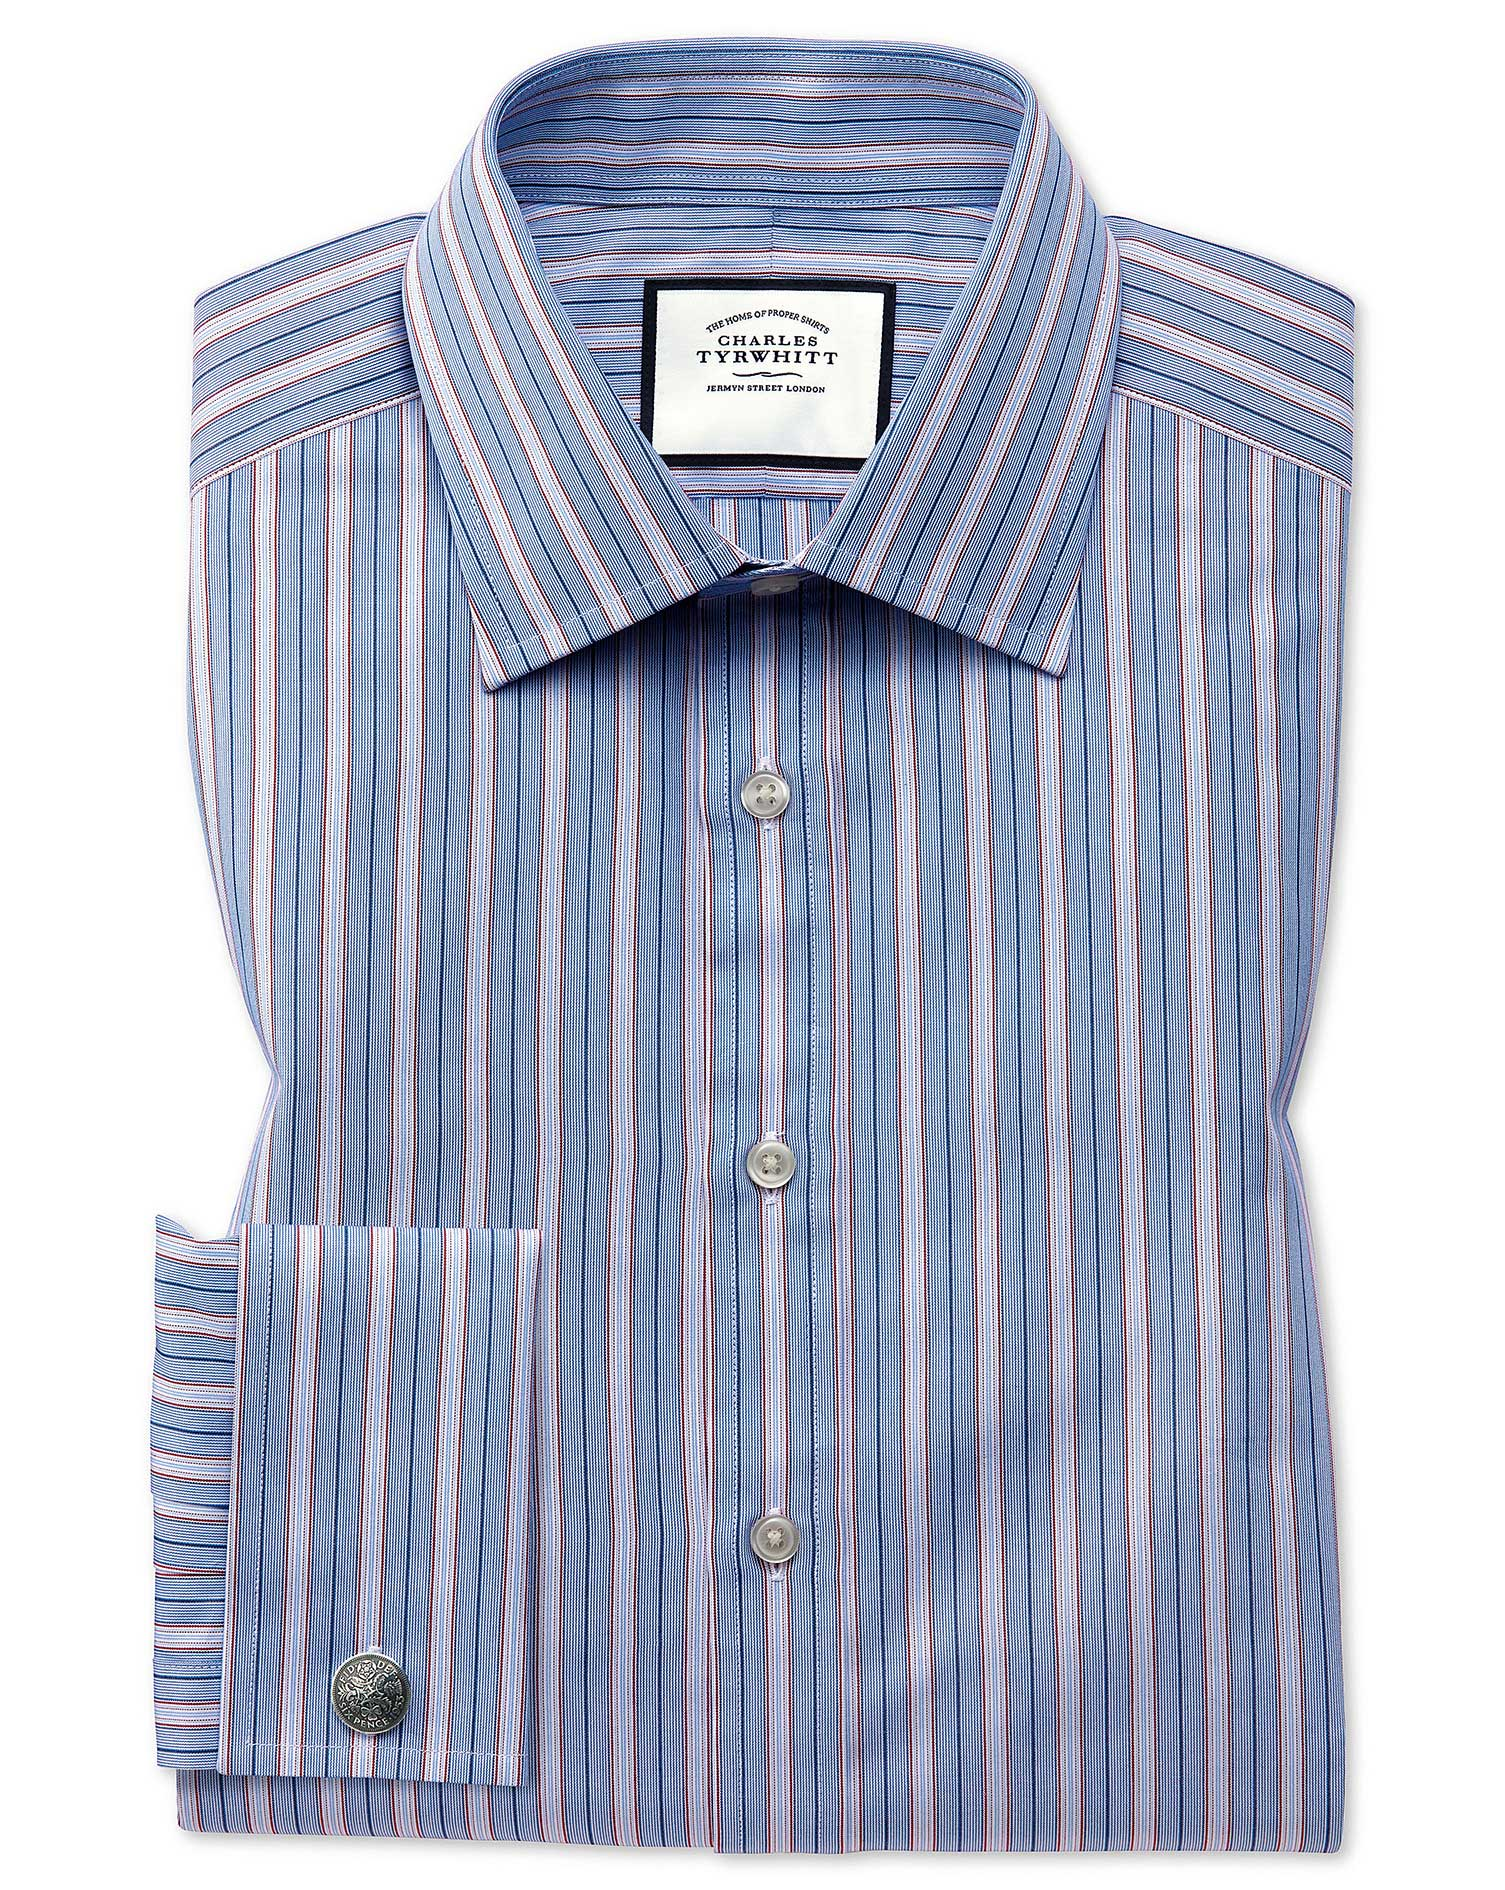 Slim Fit Red Multi Stripe Egyptian Cotton Formal Shirt Single Cuff Size 17/37 by Charles Tyrwhitt